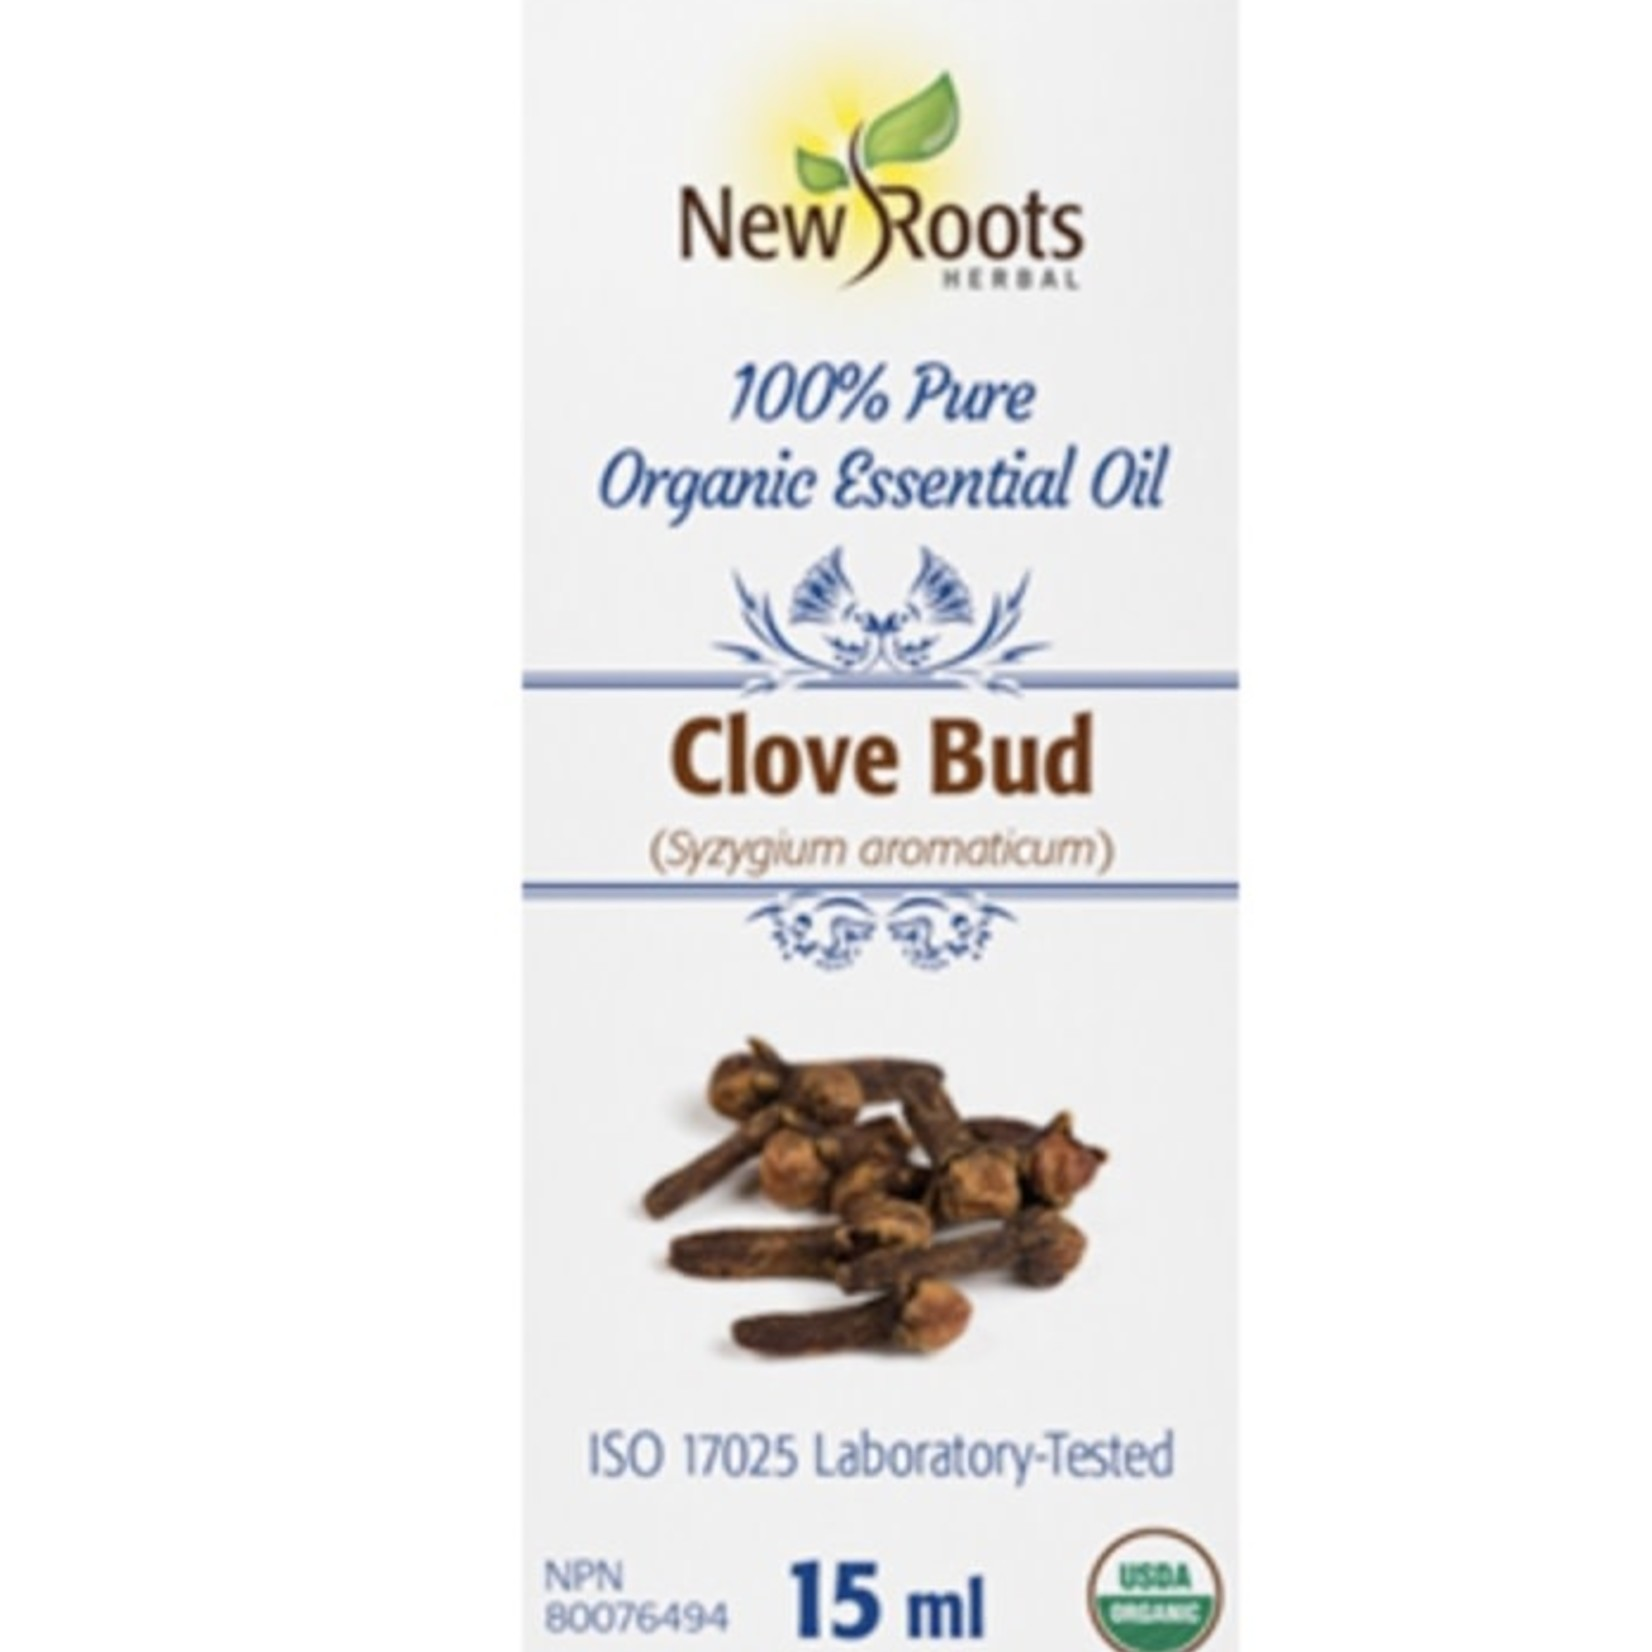 New Roots New Roots Clove Bud Essential Oil 15ml